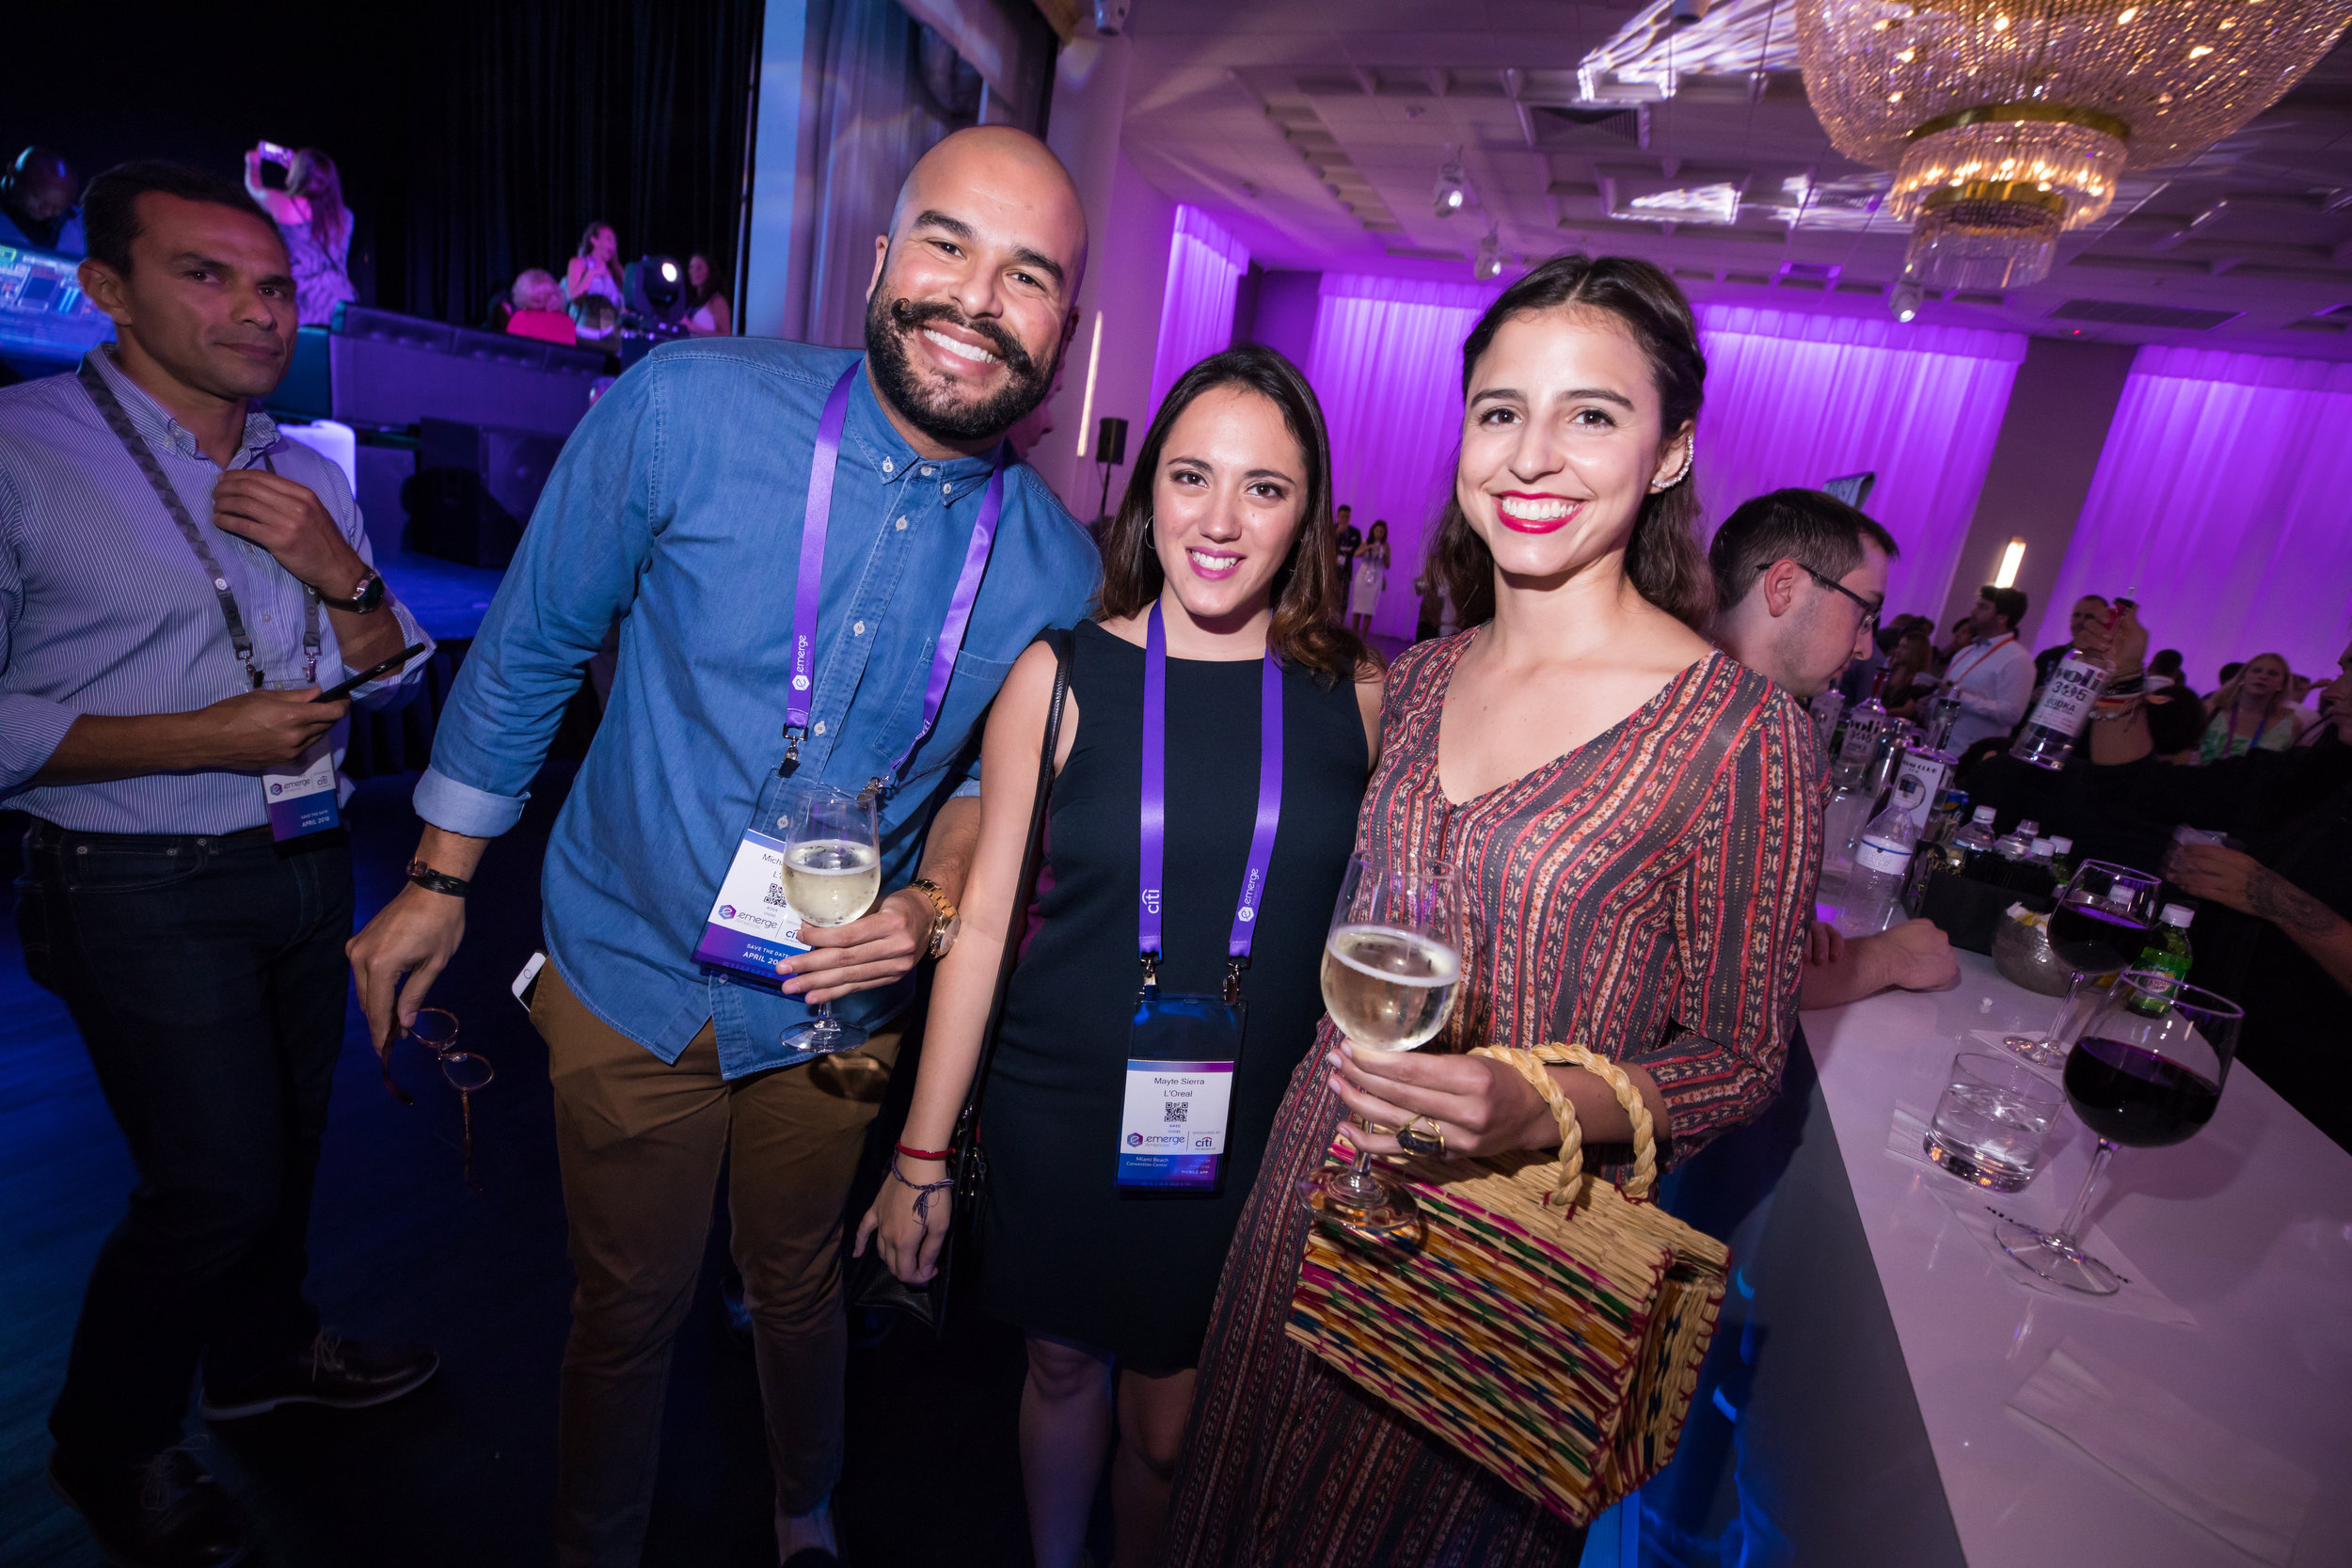 6-11-17 Emerge Opening Party-148.jpg